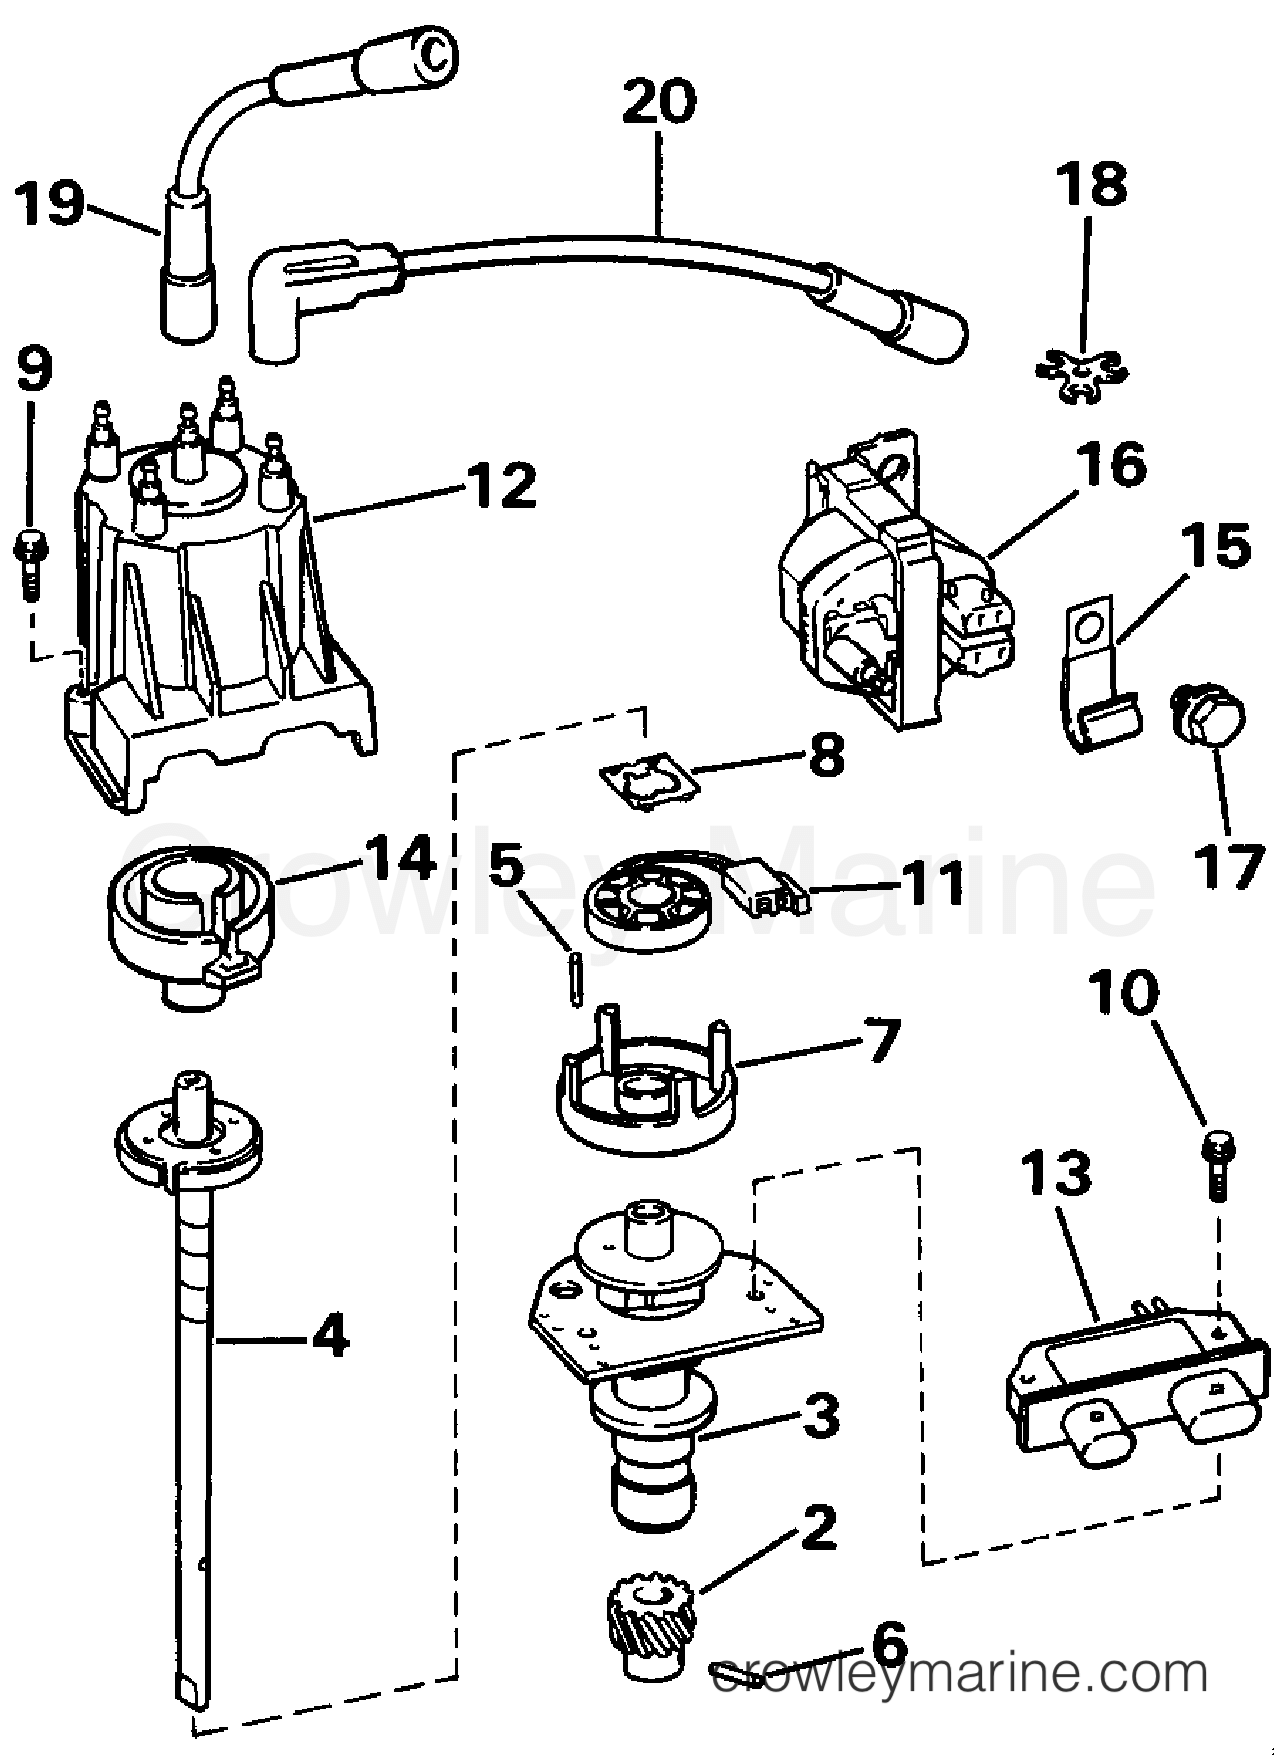 93 Omc Wiring Diagram Schematics Inboard Outboard Diagrams Distributor Ignition Coil 1993 Stern Drive 3 302bmrjvb Sailboat Electrical